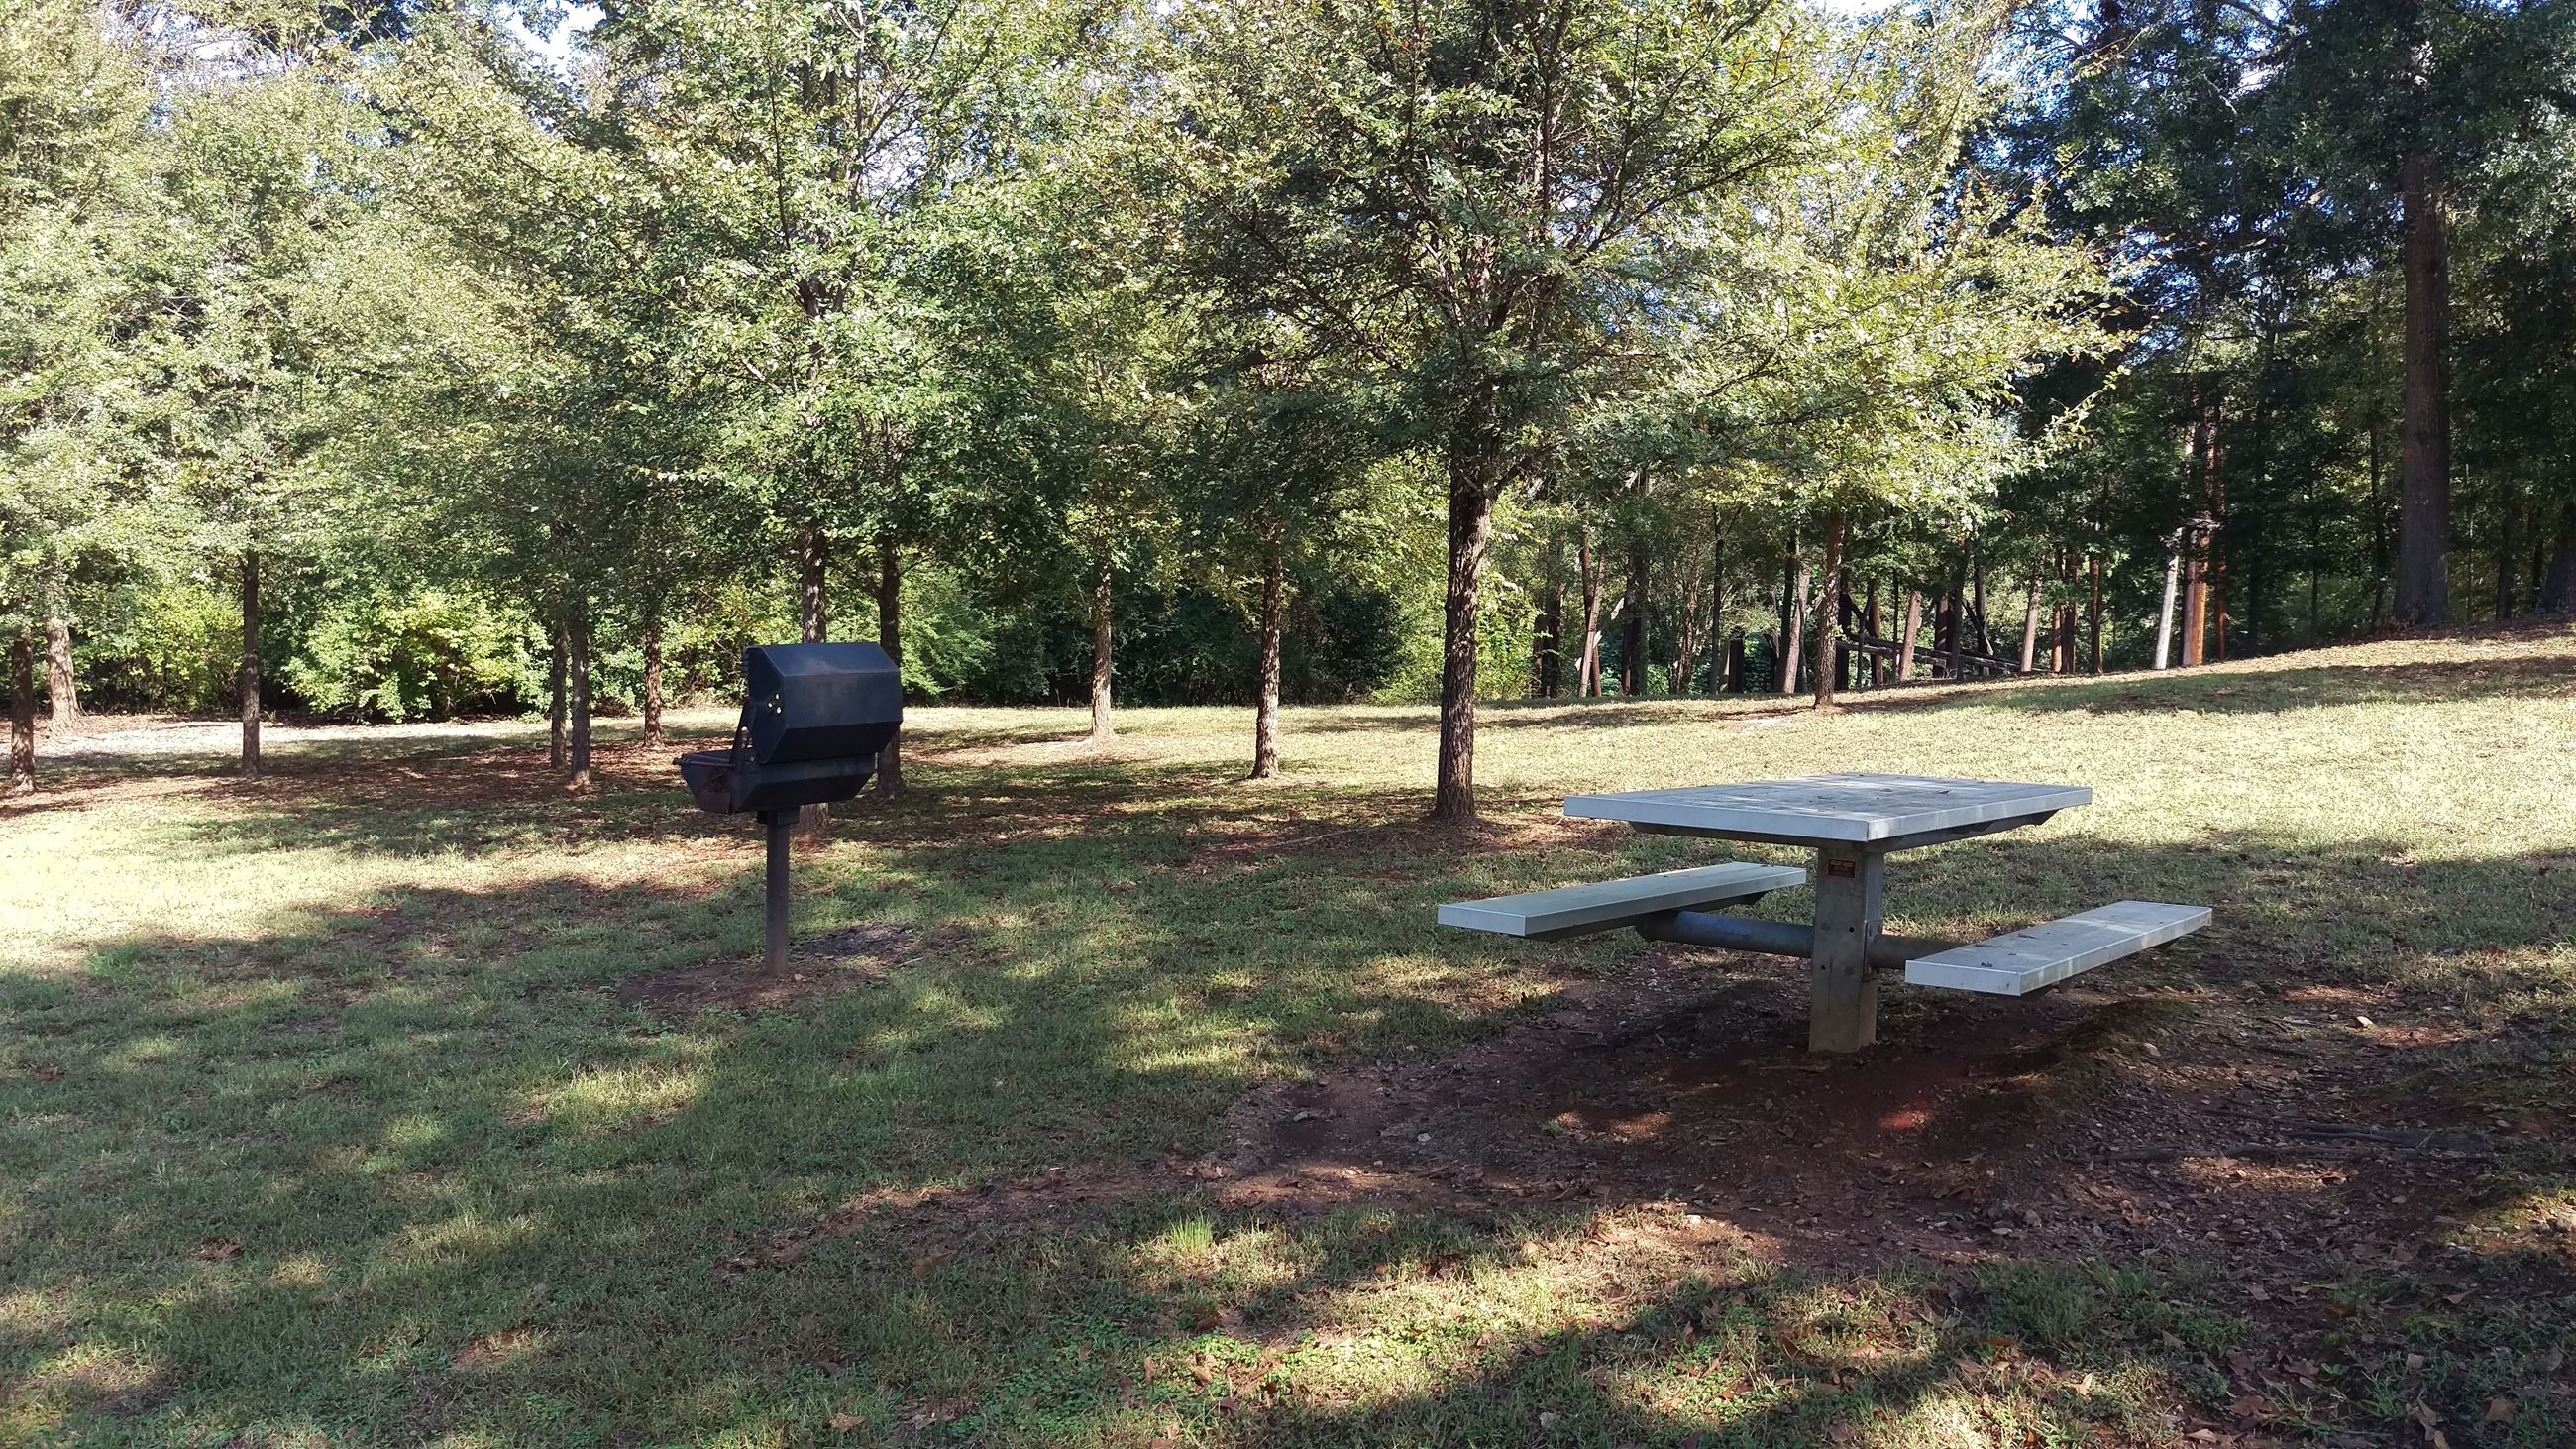 Picnic Area adjacent to the Poplar Street Parking at Dudley Park.